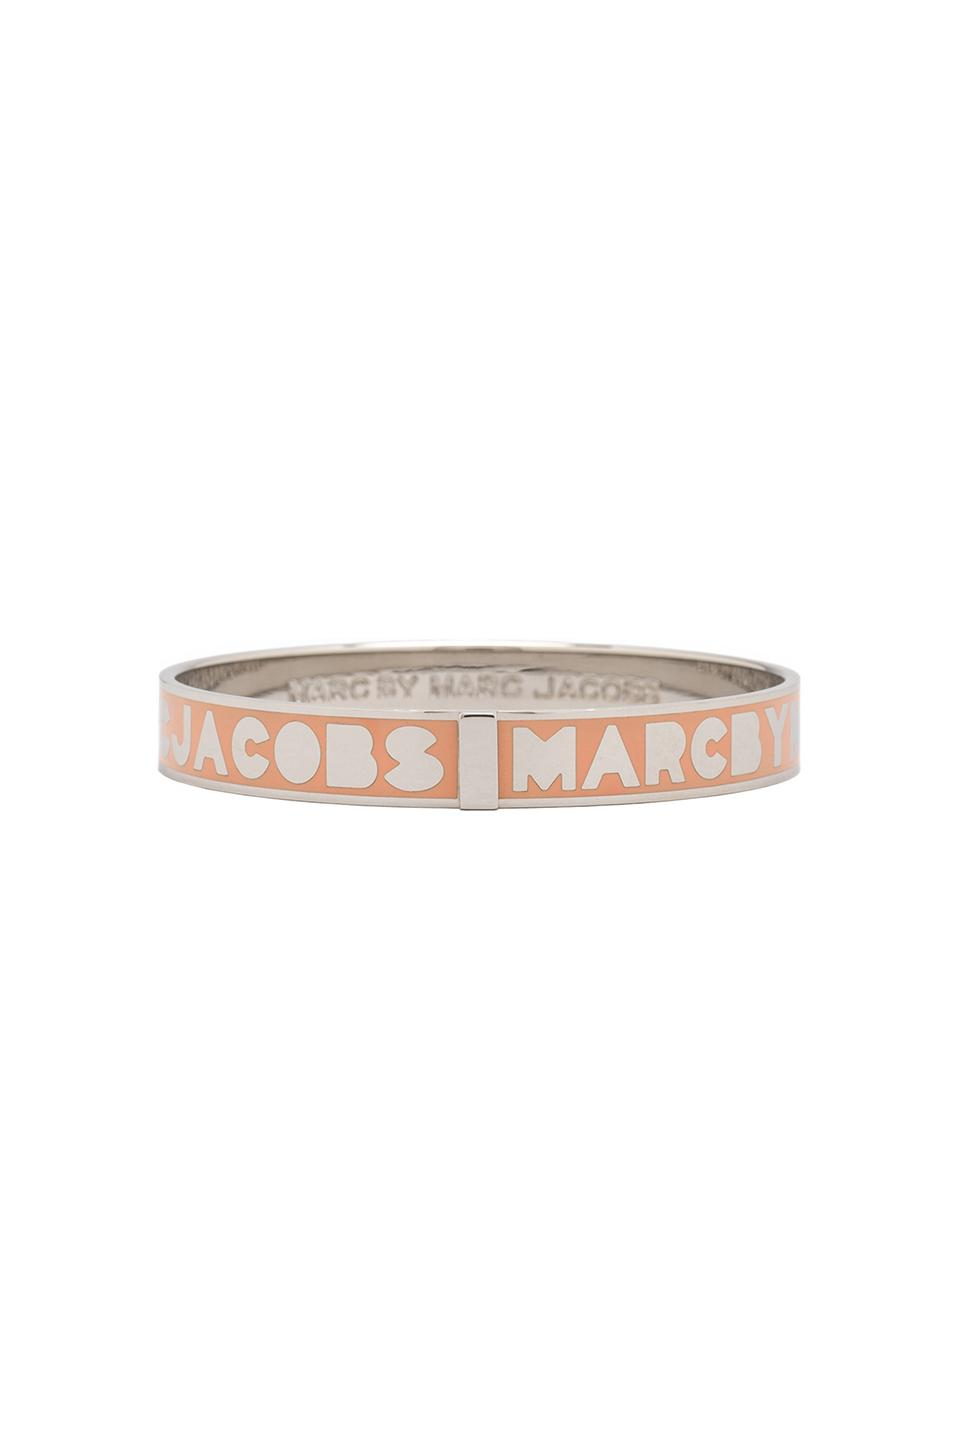 Marc by Marc Jacobs Logo Bangle in Metallic Silver